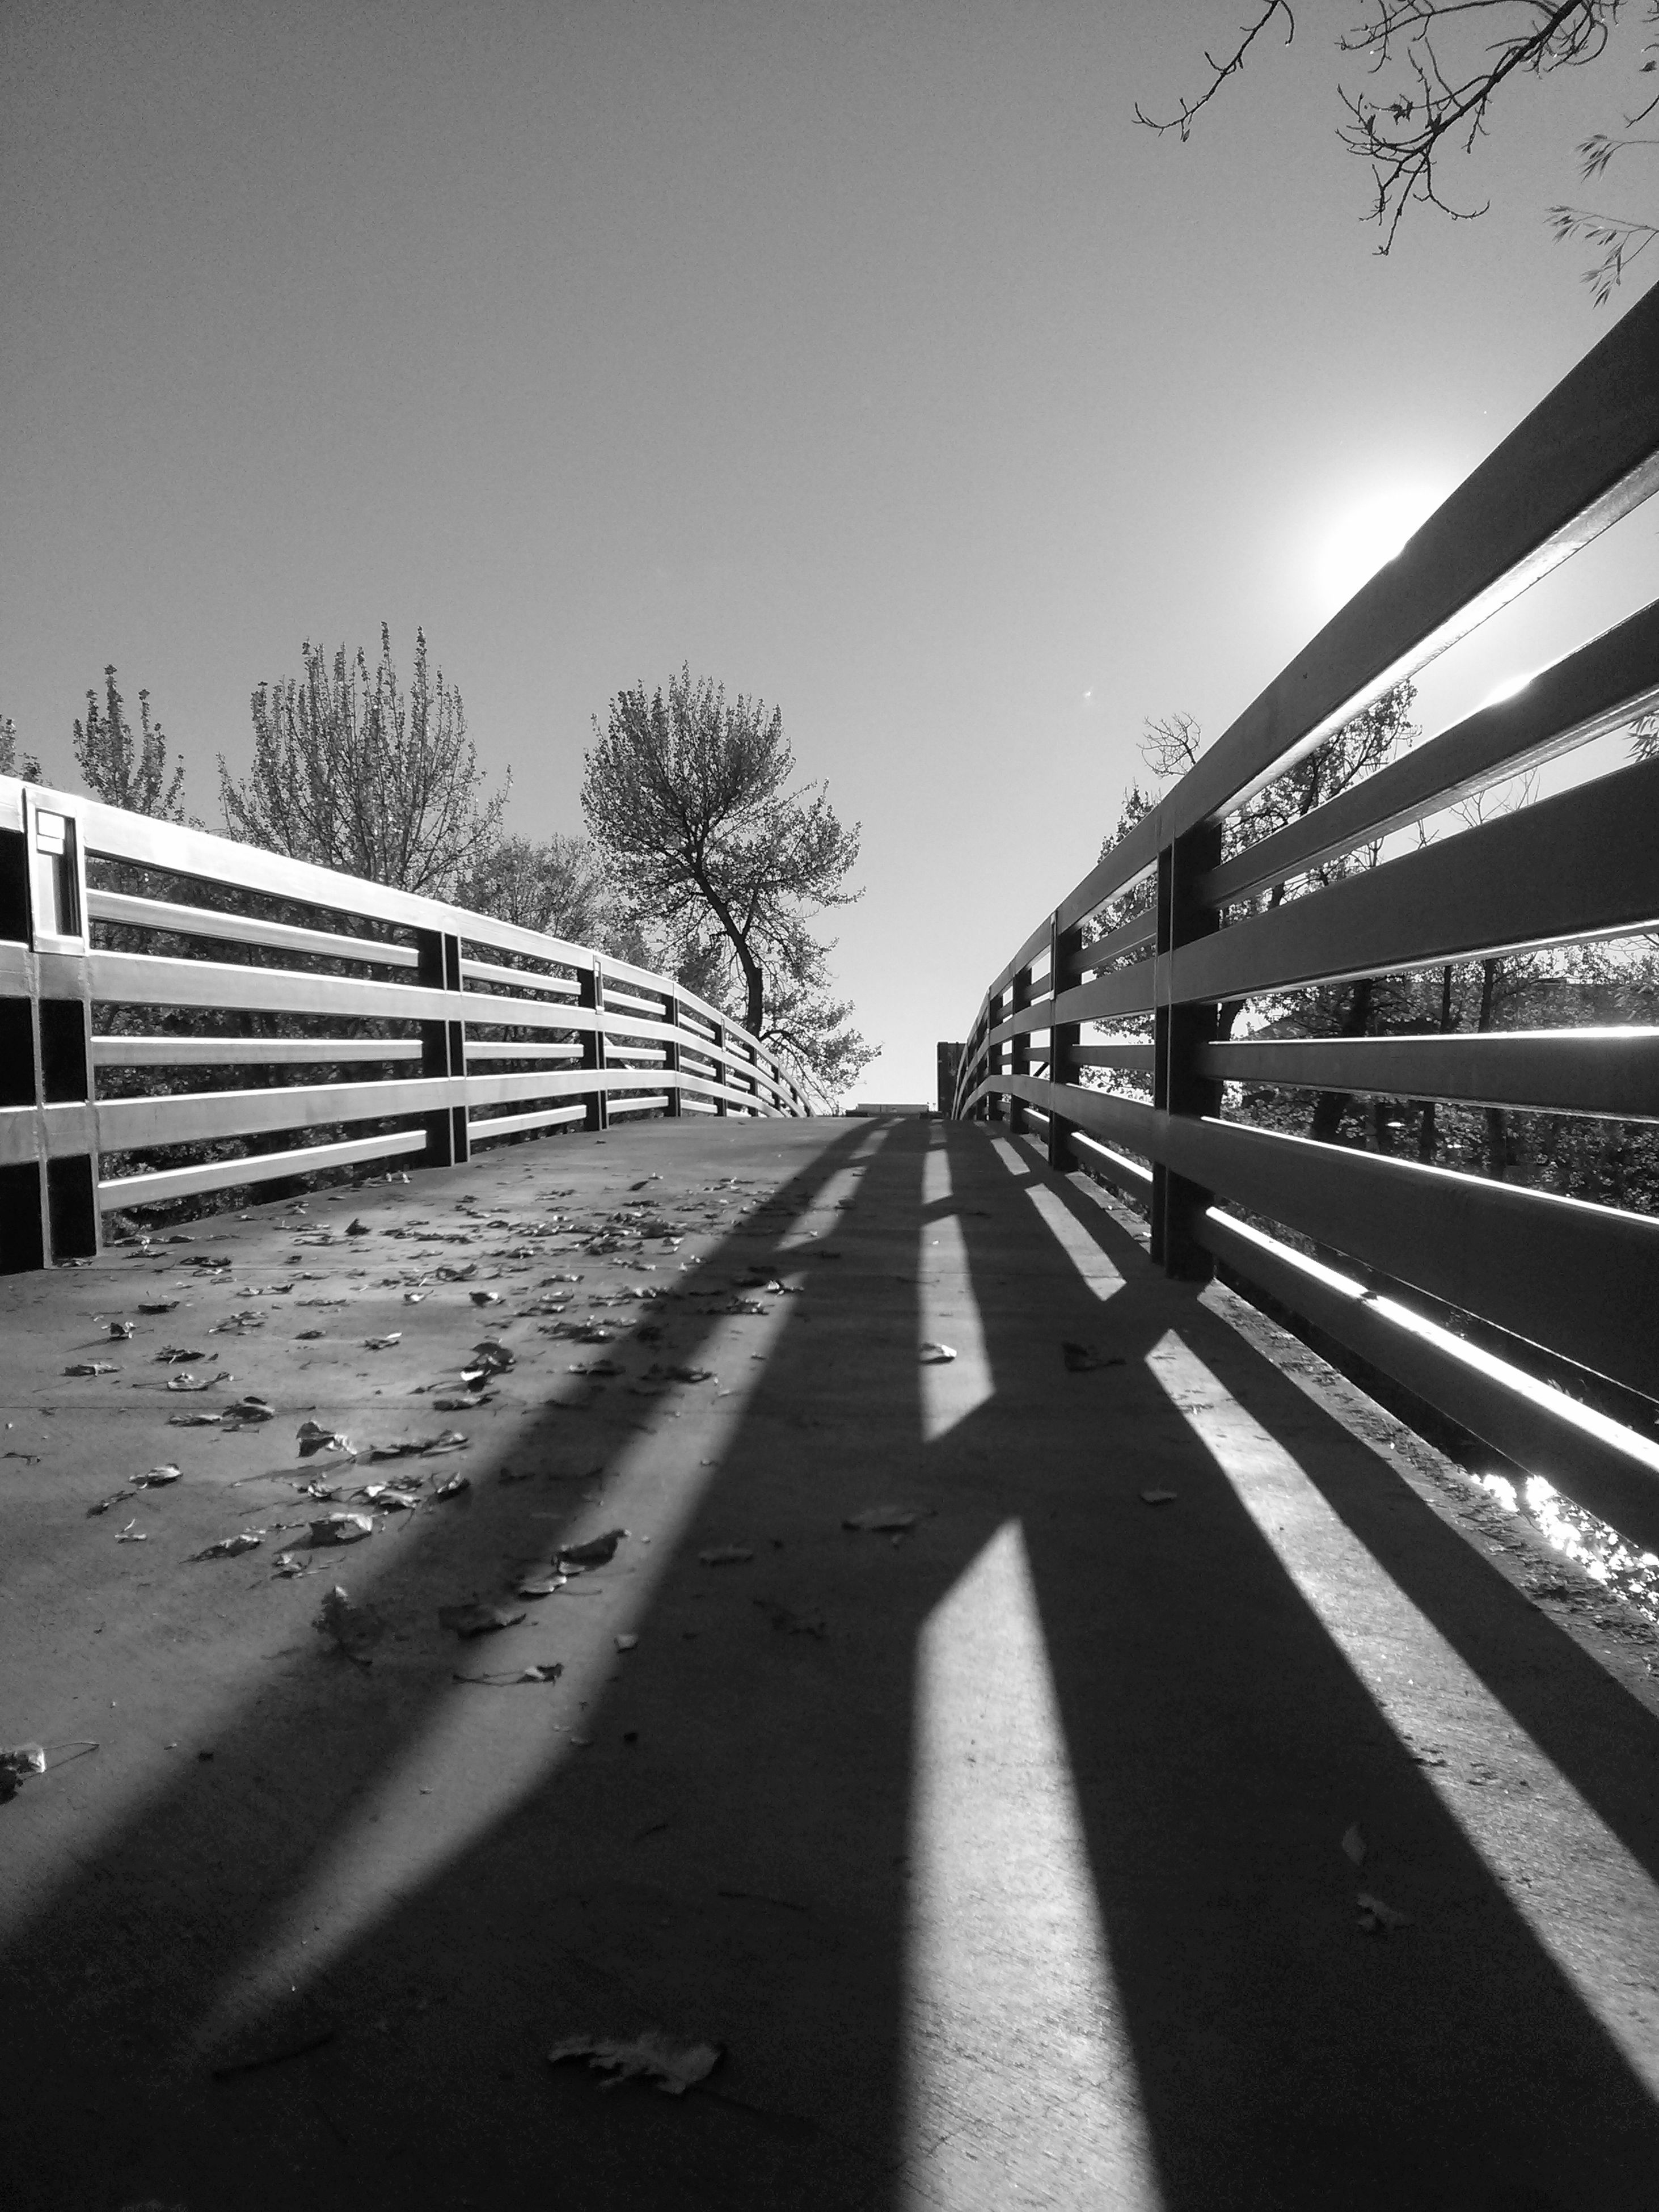 the way forward, clear sky, transportation, diminishing perspective, road marking, vanishing point, road, long, railing, copy space, built structure, connection, empty, sky, architecture, sunlight, shadow, outdoors, railroad track, bridge - man made structure